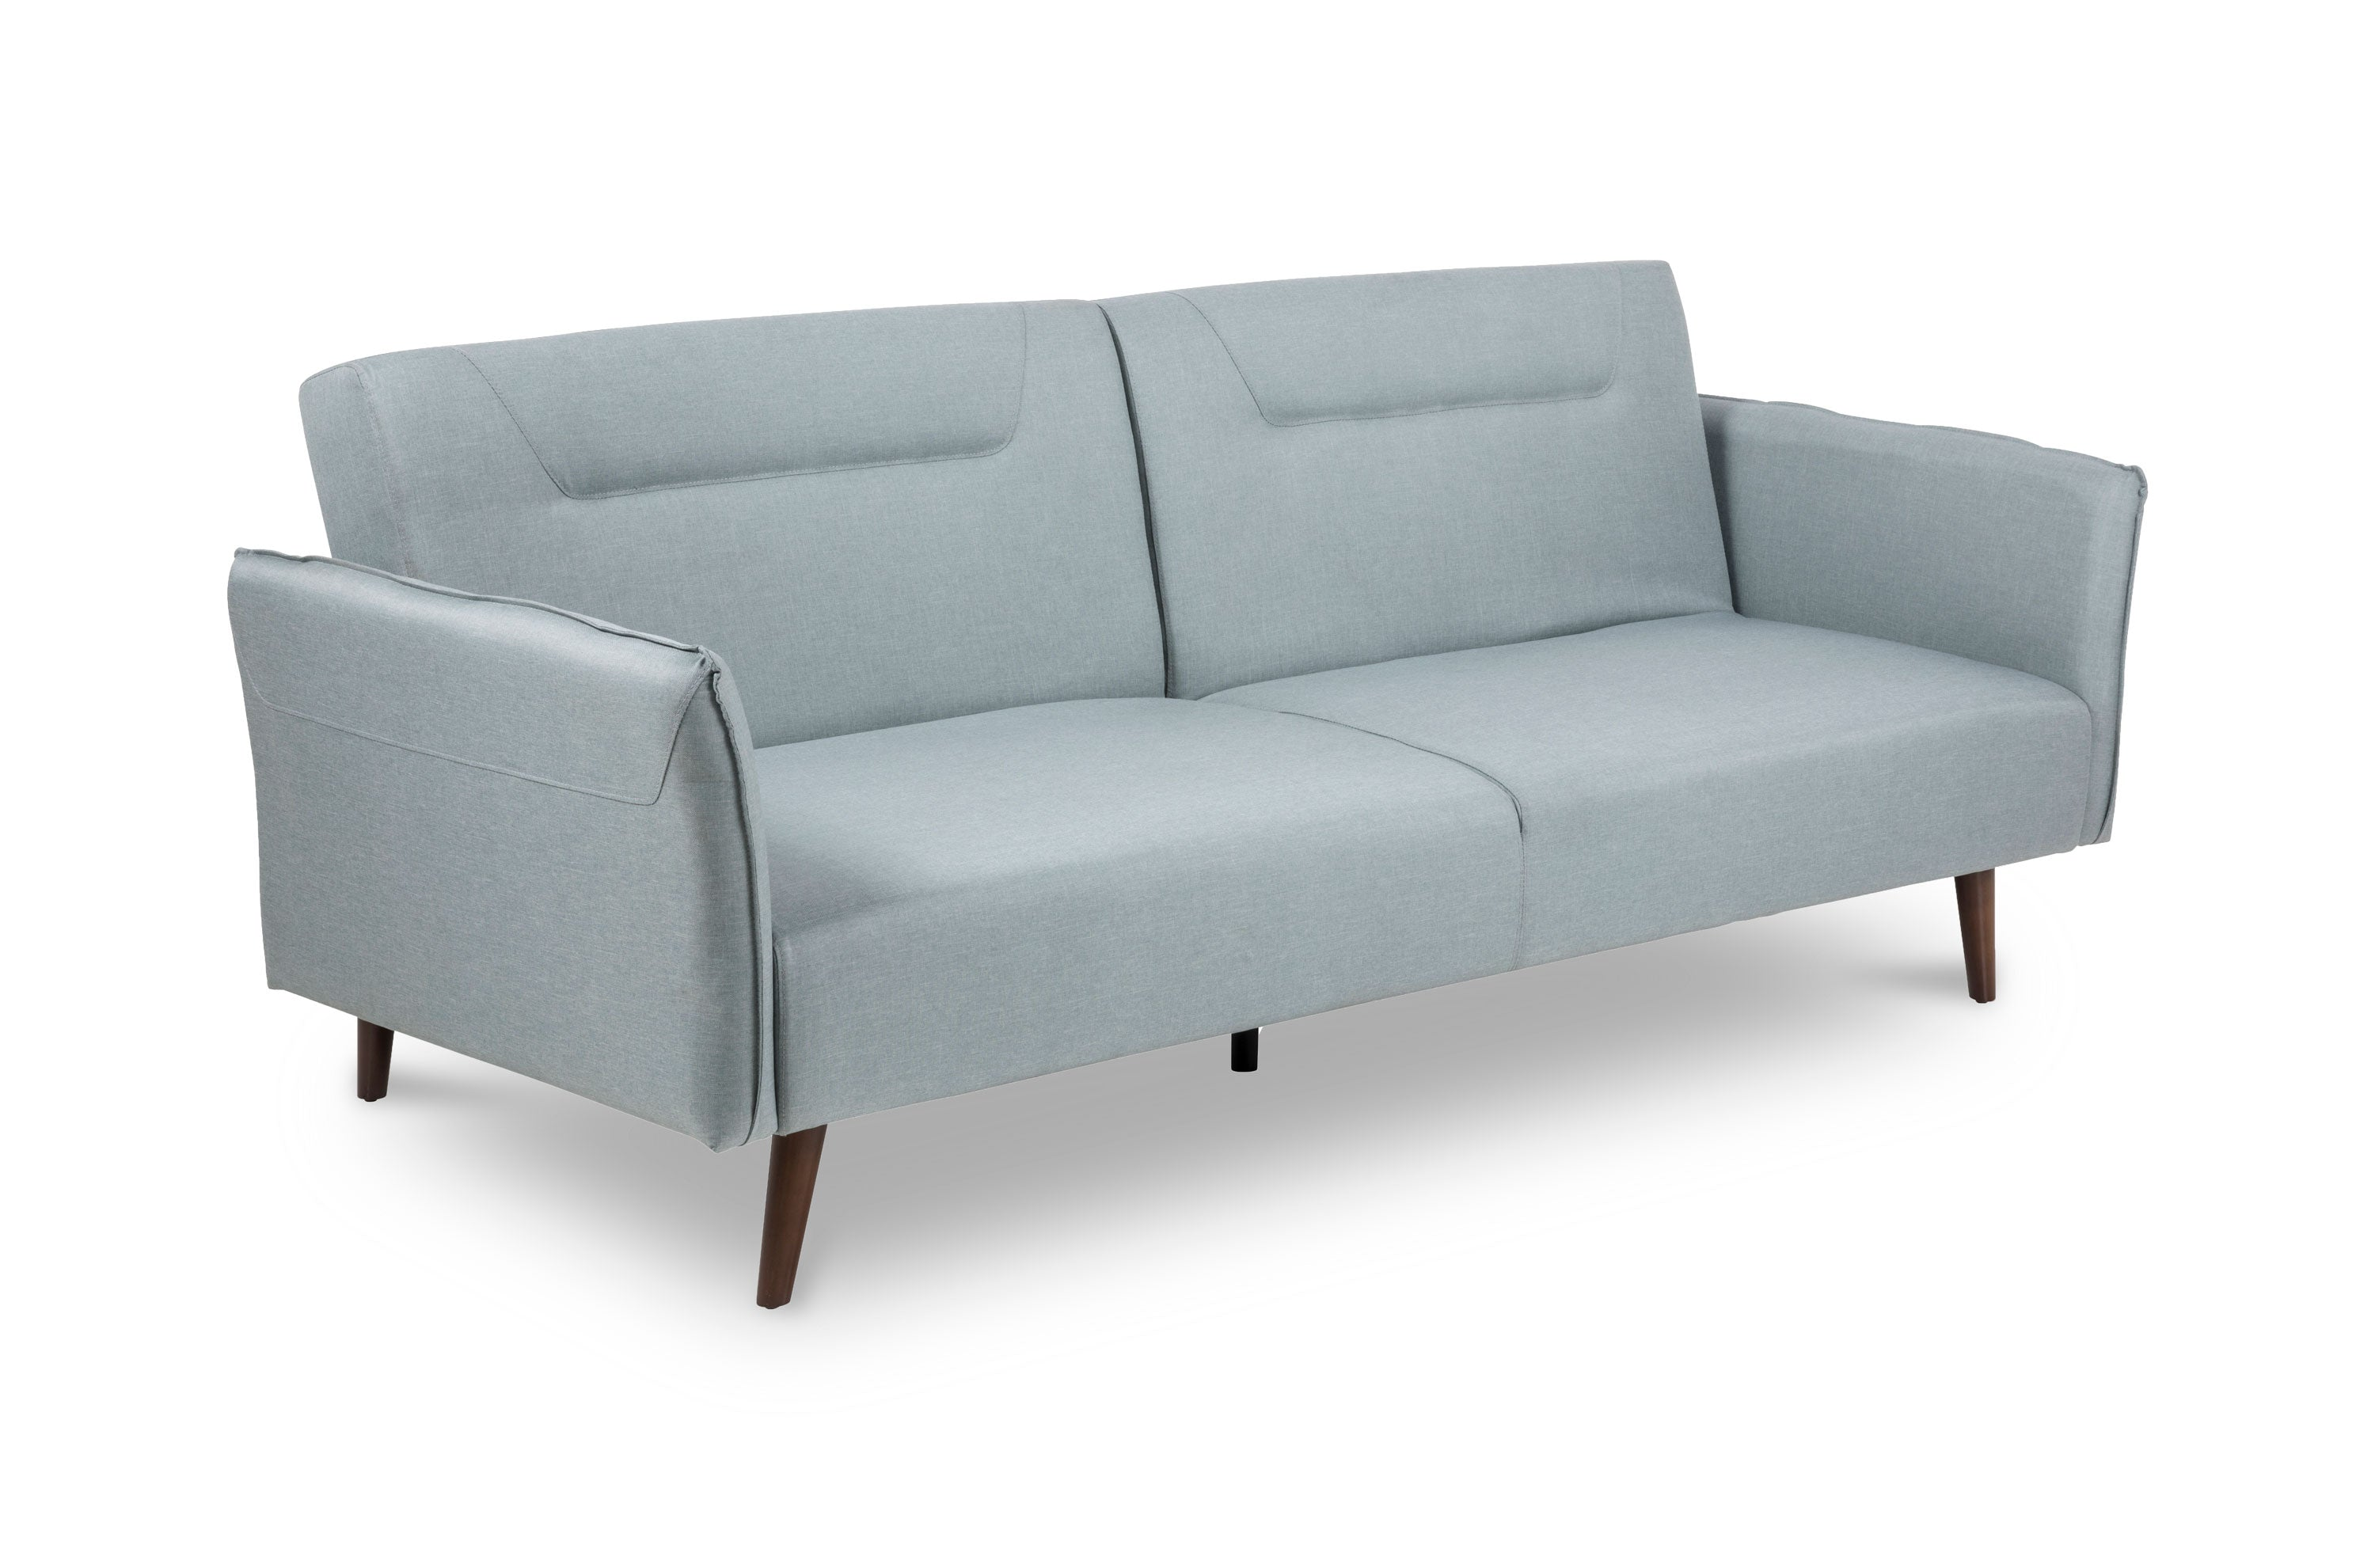 polish of furniture sofa the perfect fit convertibles beds a bed wax benefits sofabed